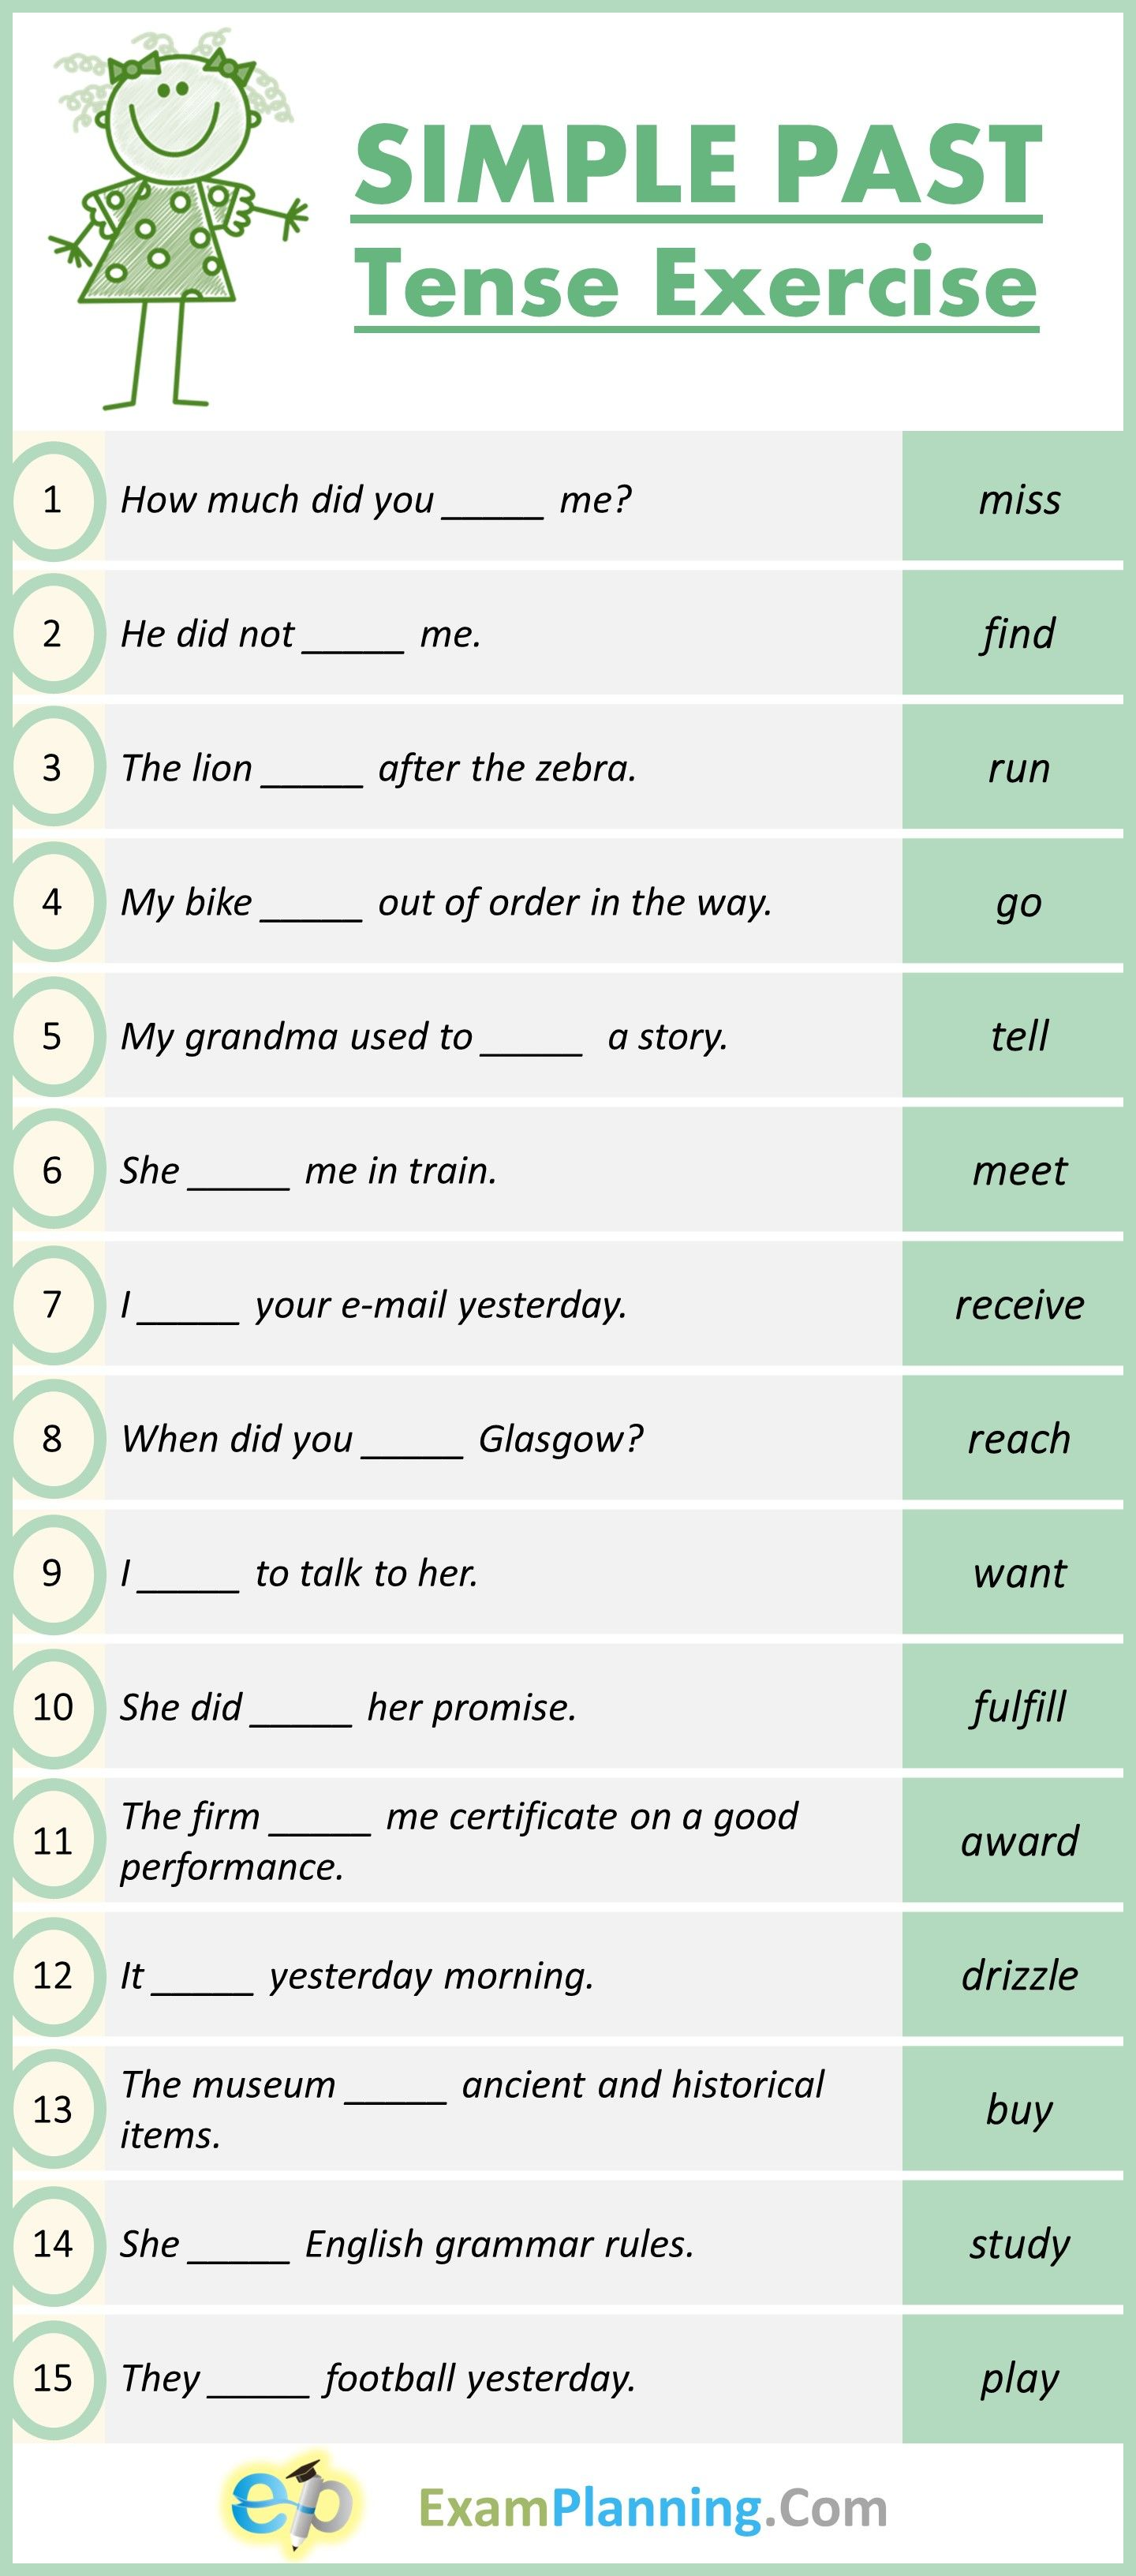 Simple Past Tense Exercises